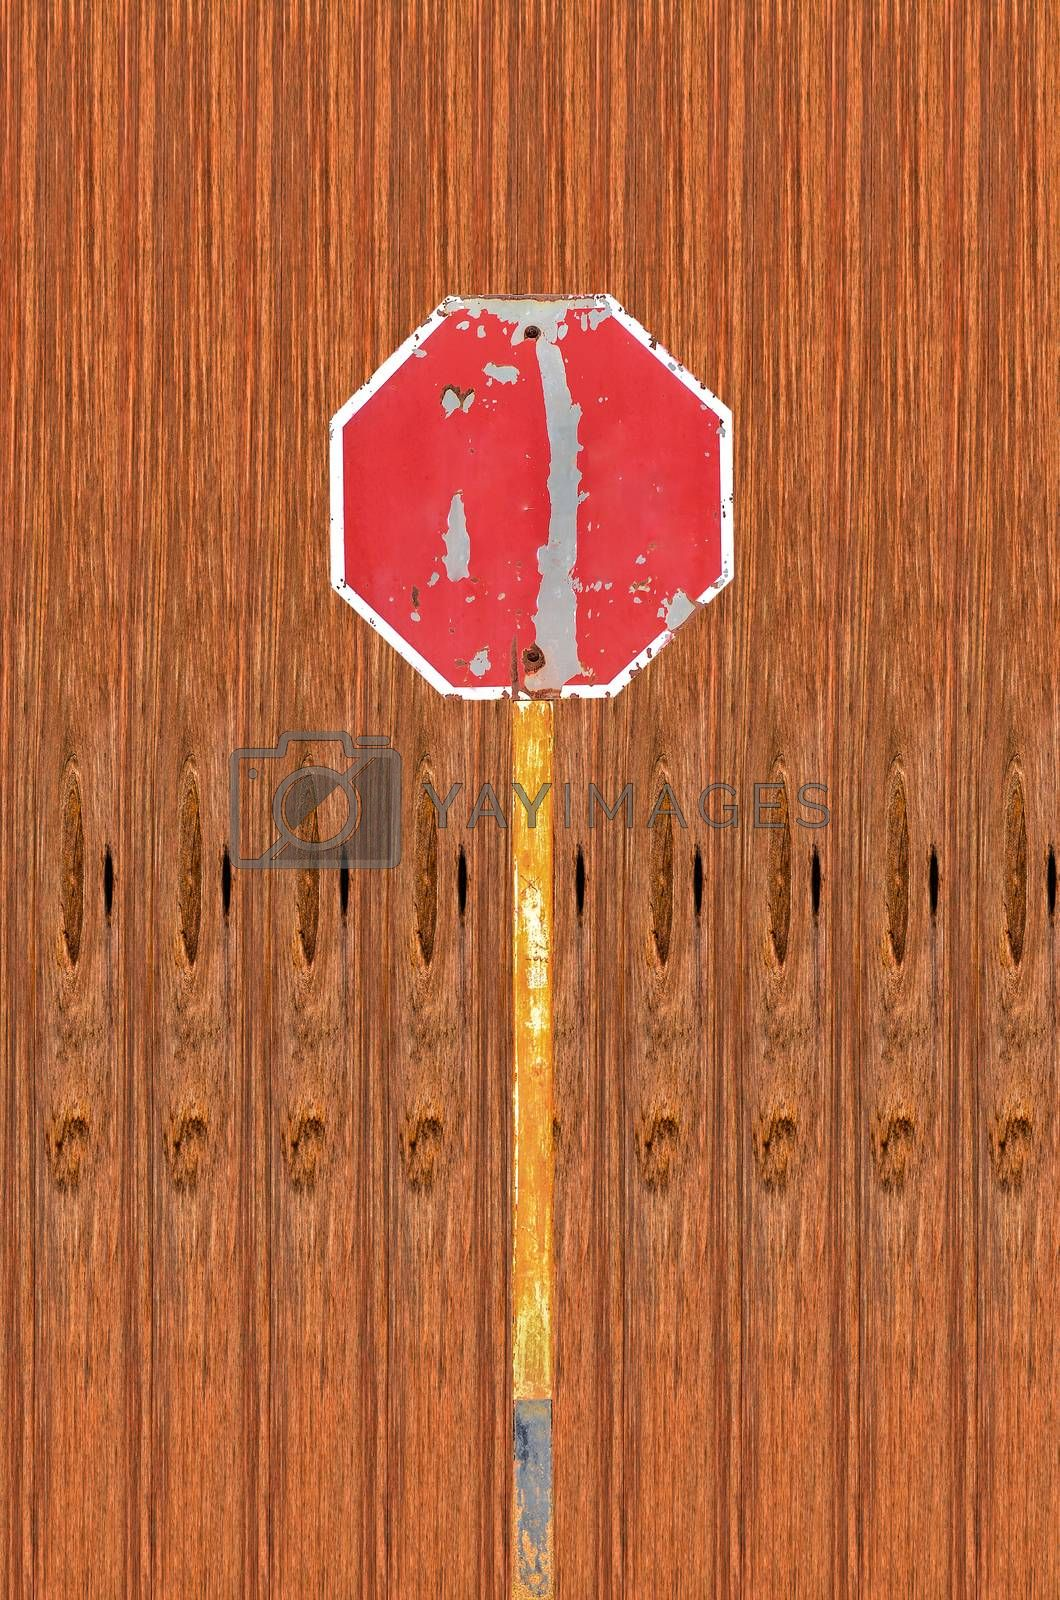 Royalty free image of Traffic Signs by raweenuttapong